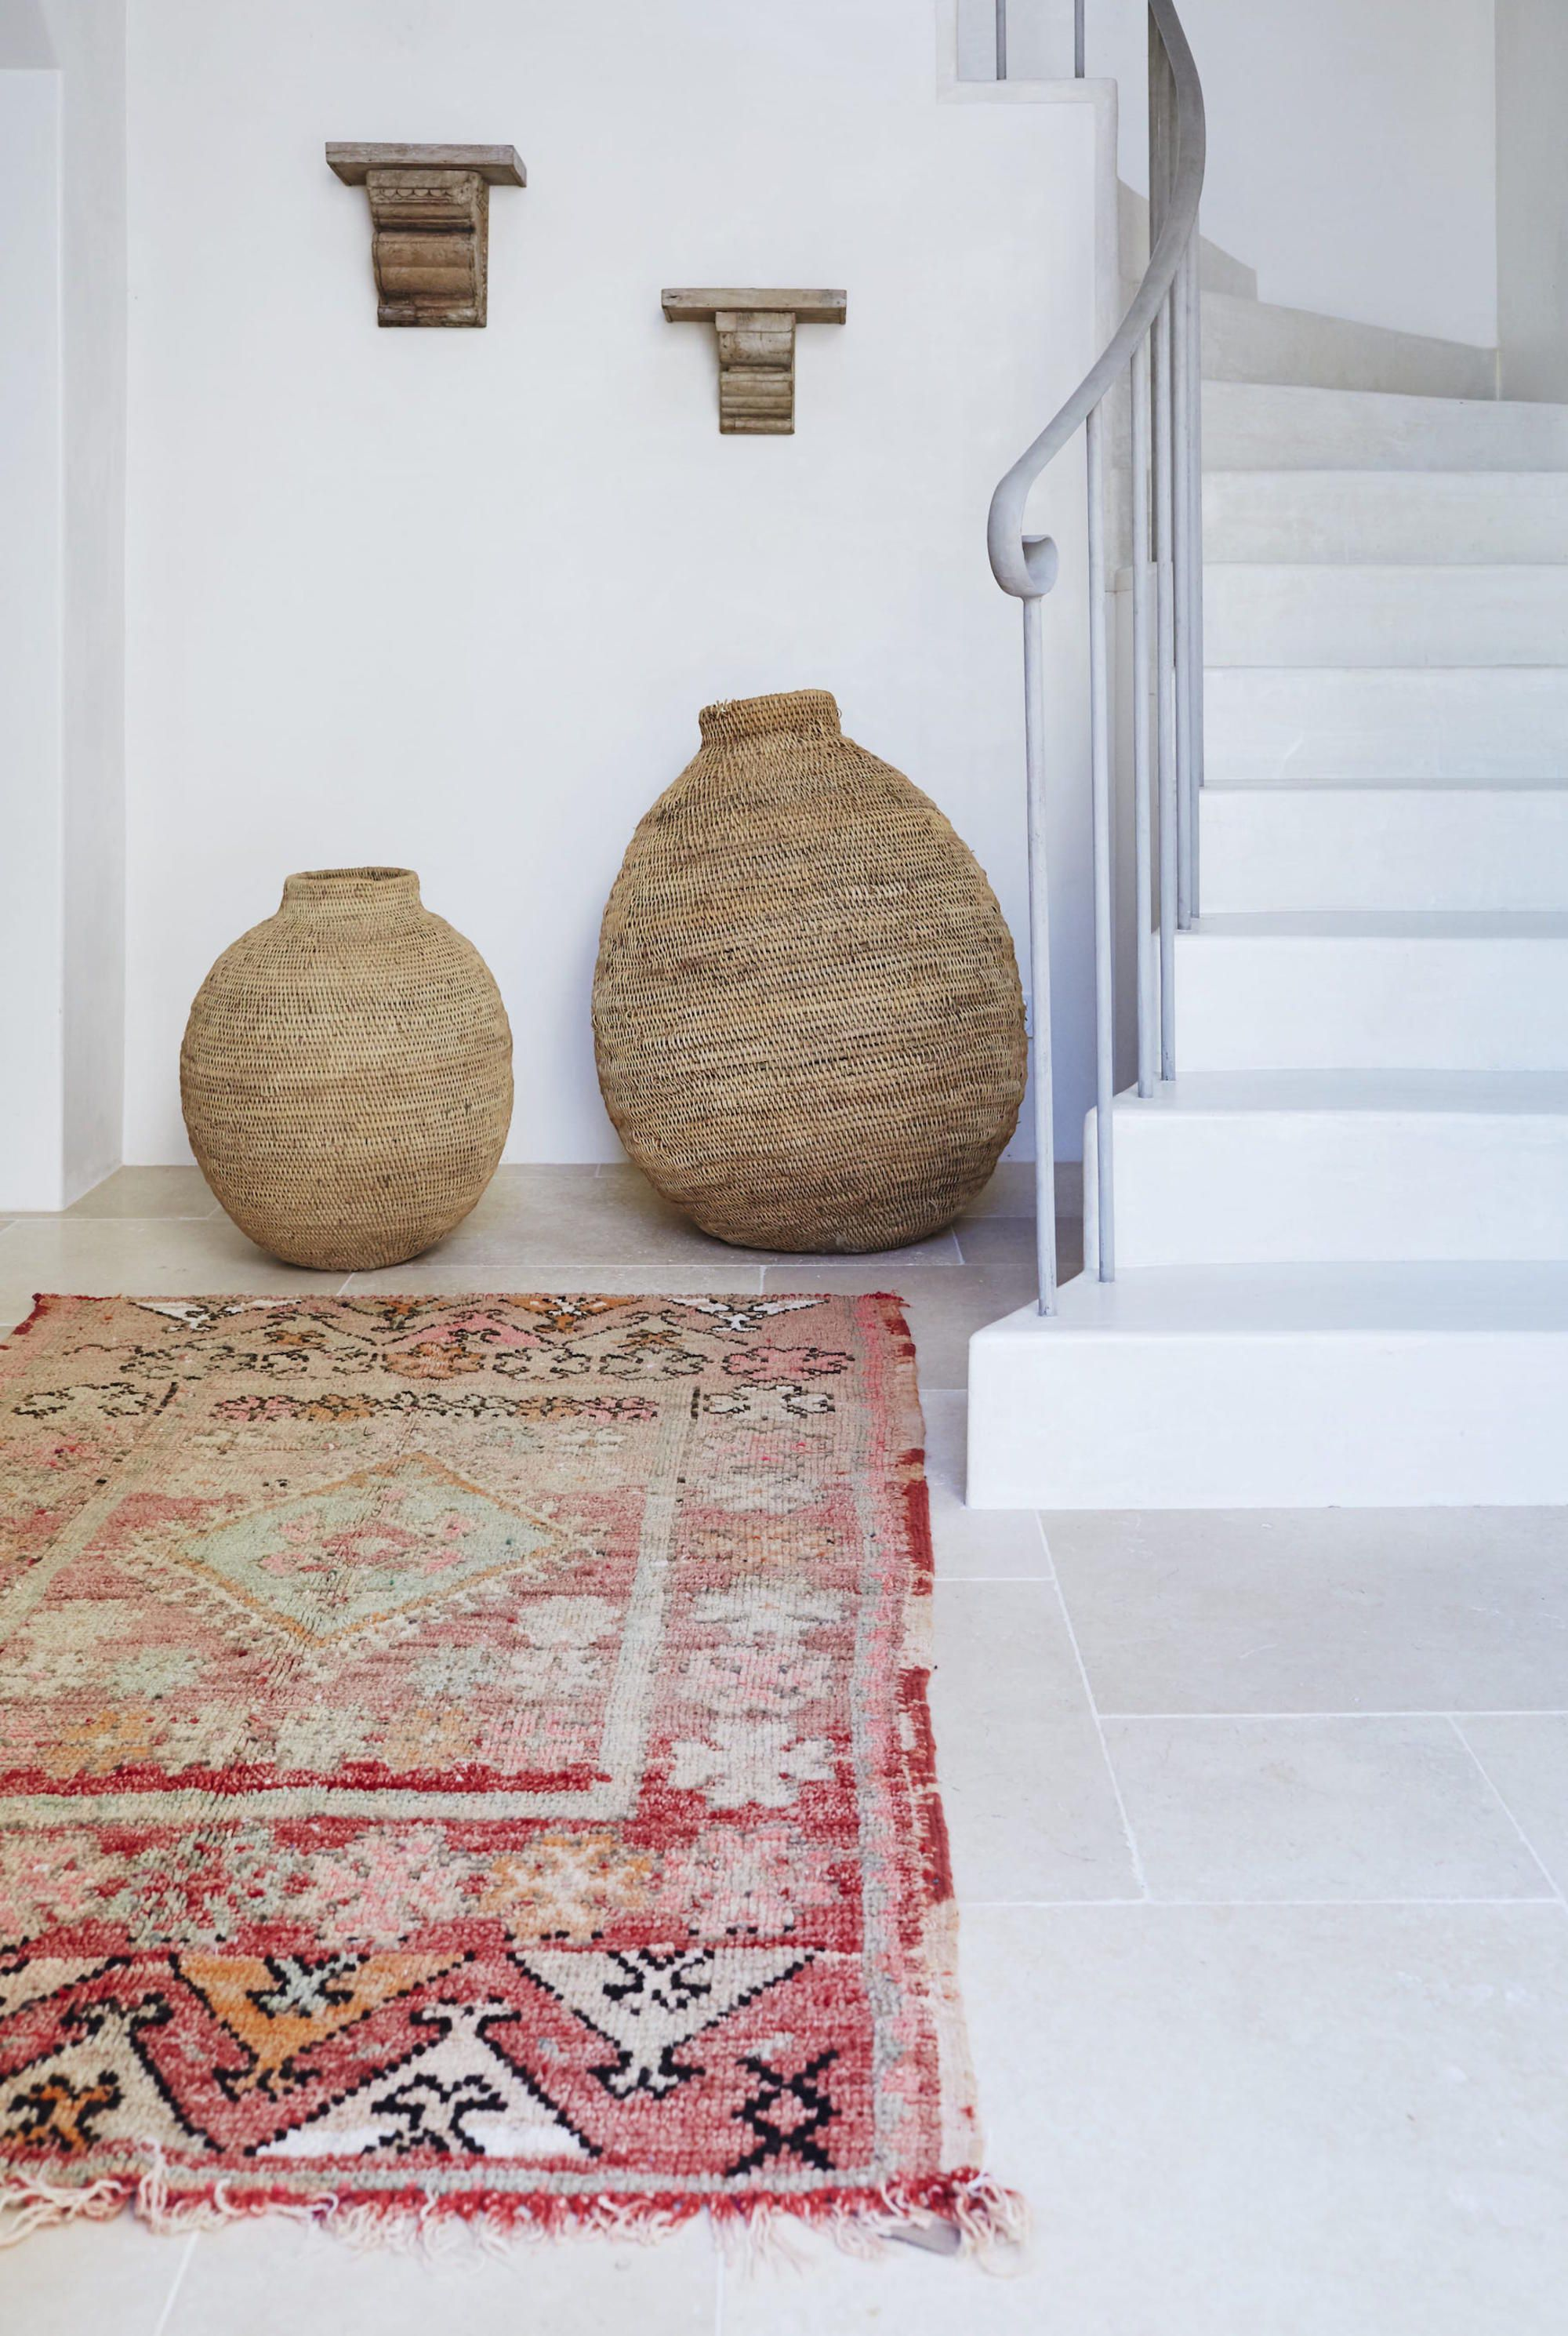 Kibek Teppich Palermo Moroccan Rugs Make An Inspired Entryway A Splash Of Colour In An